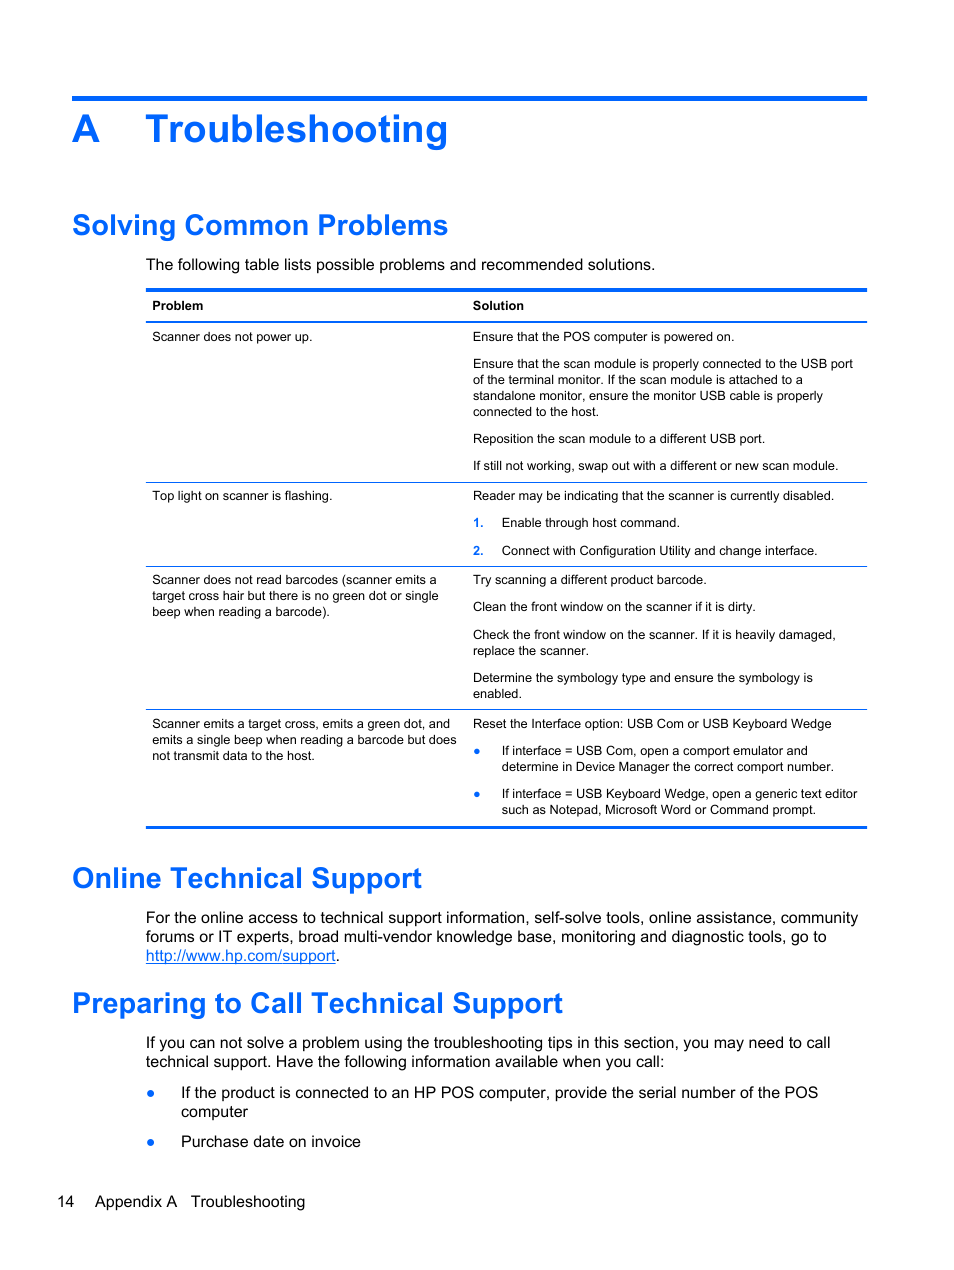 Troubleshooting, Solving common problems, Online technical support